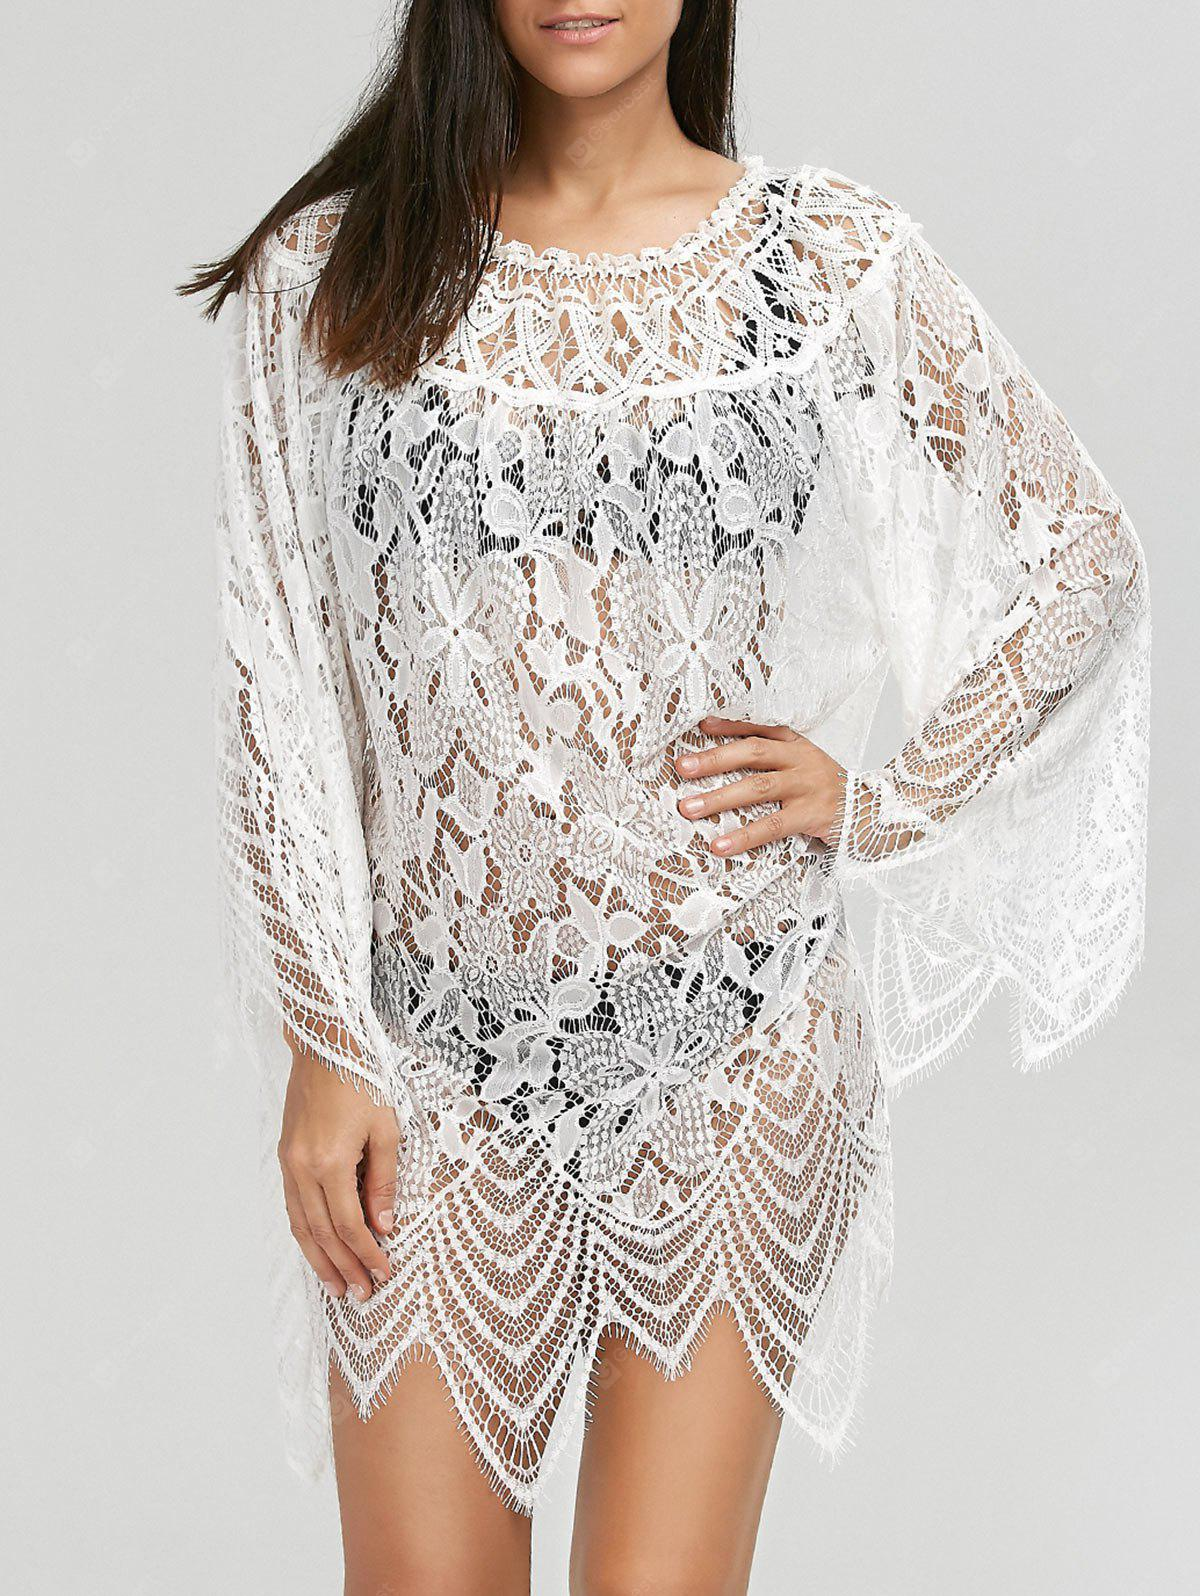 Flared Sleeve Crochet Lace Tunic Cover Up Dress